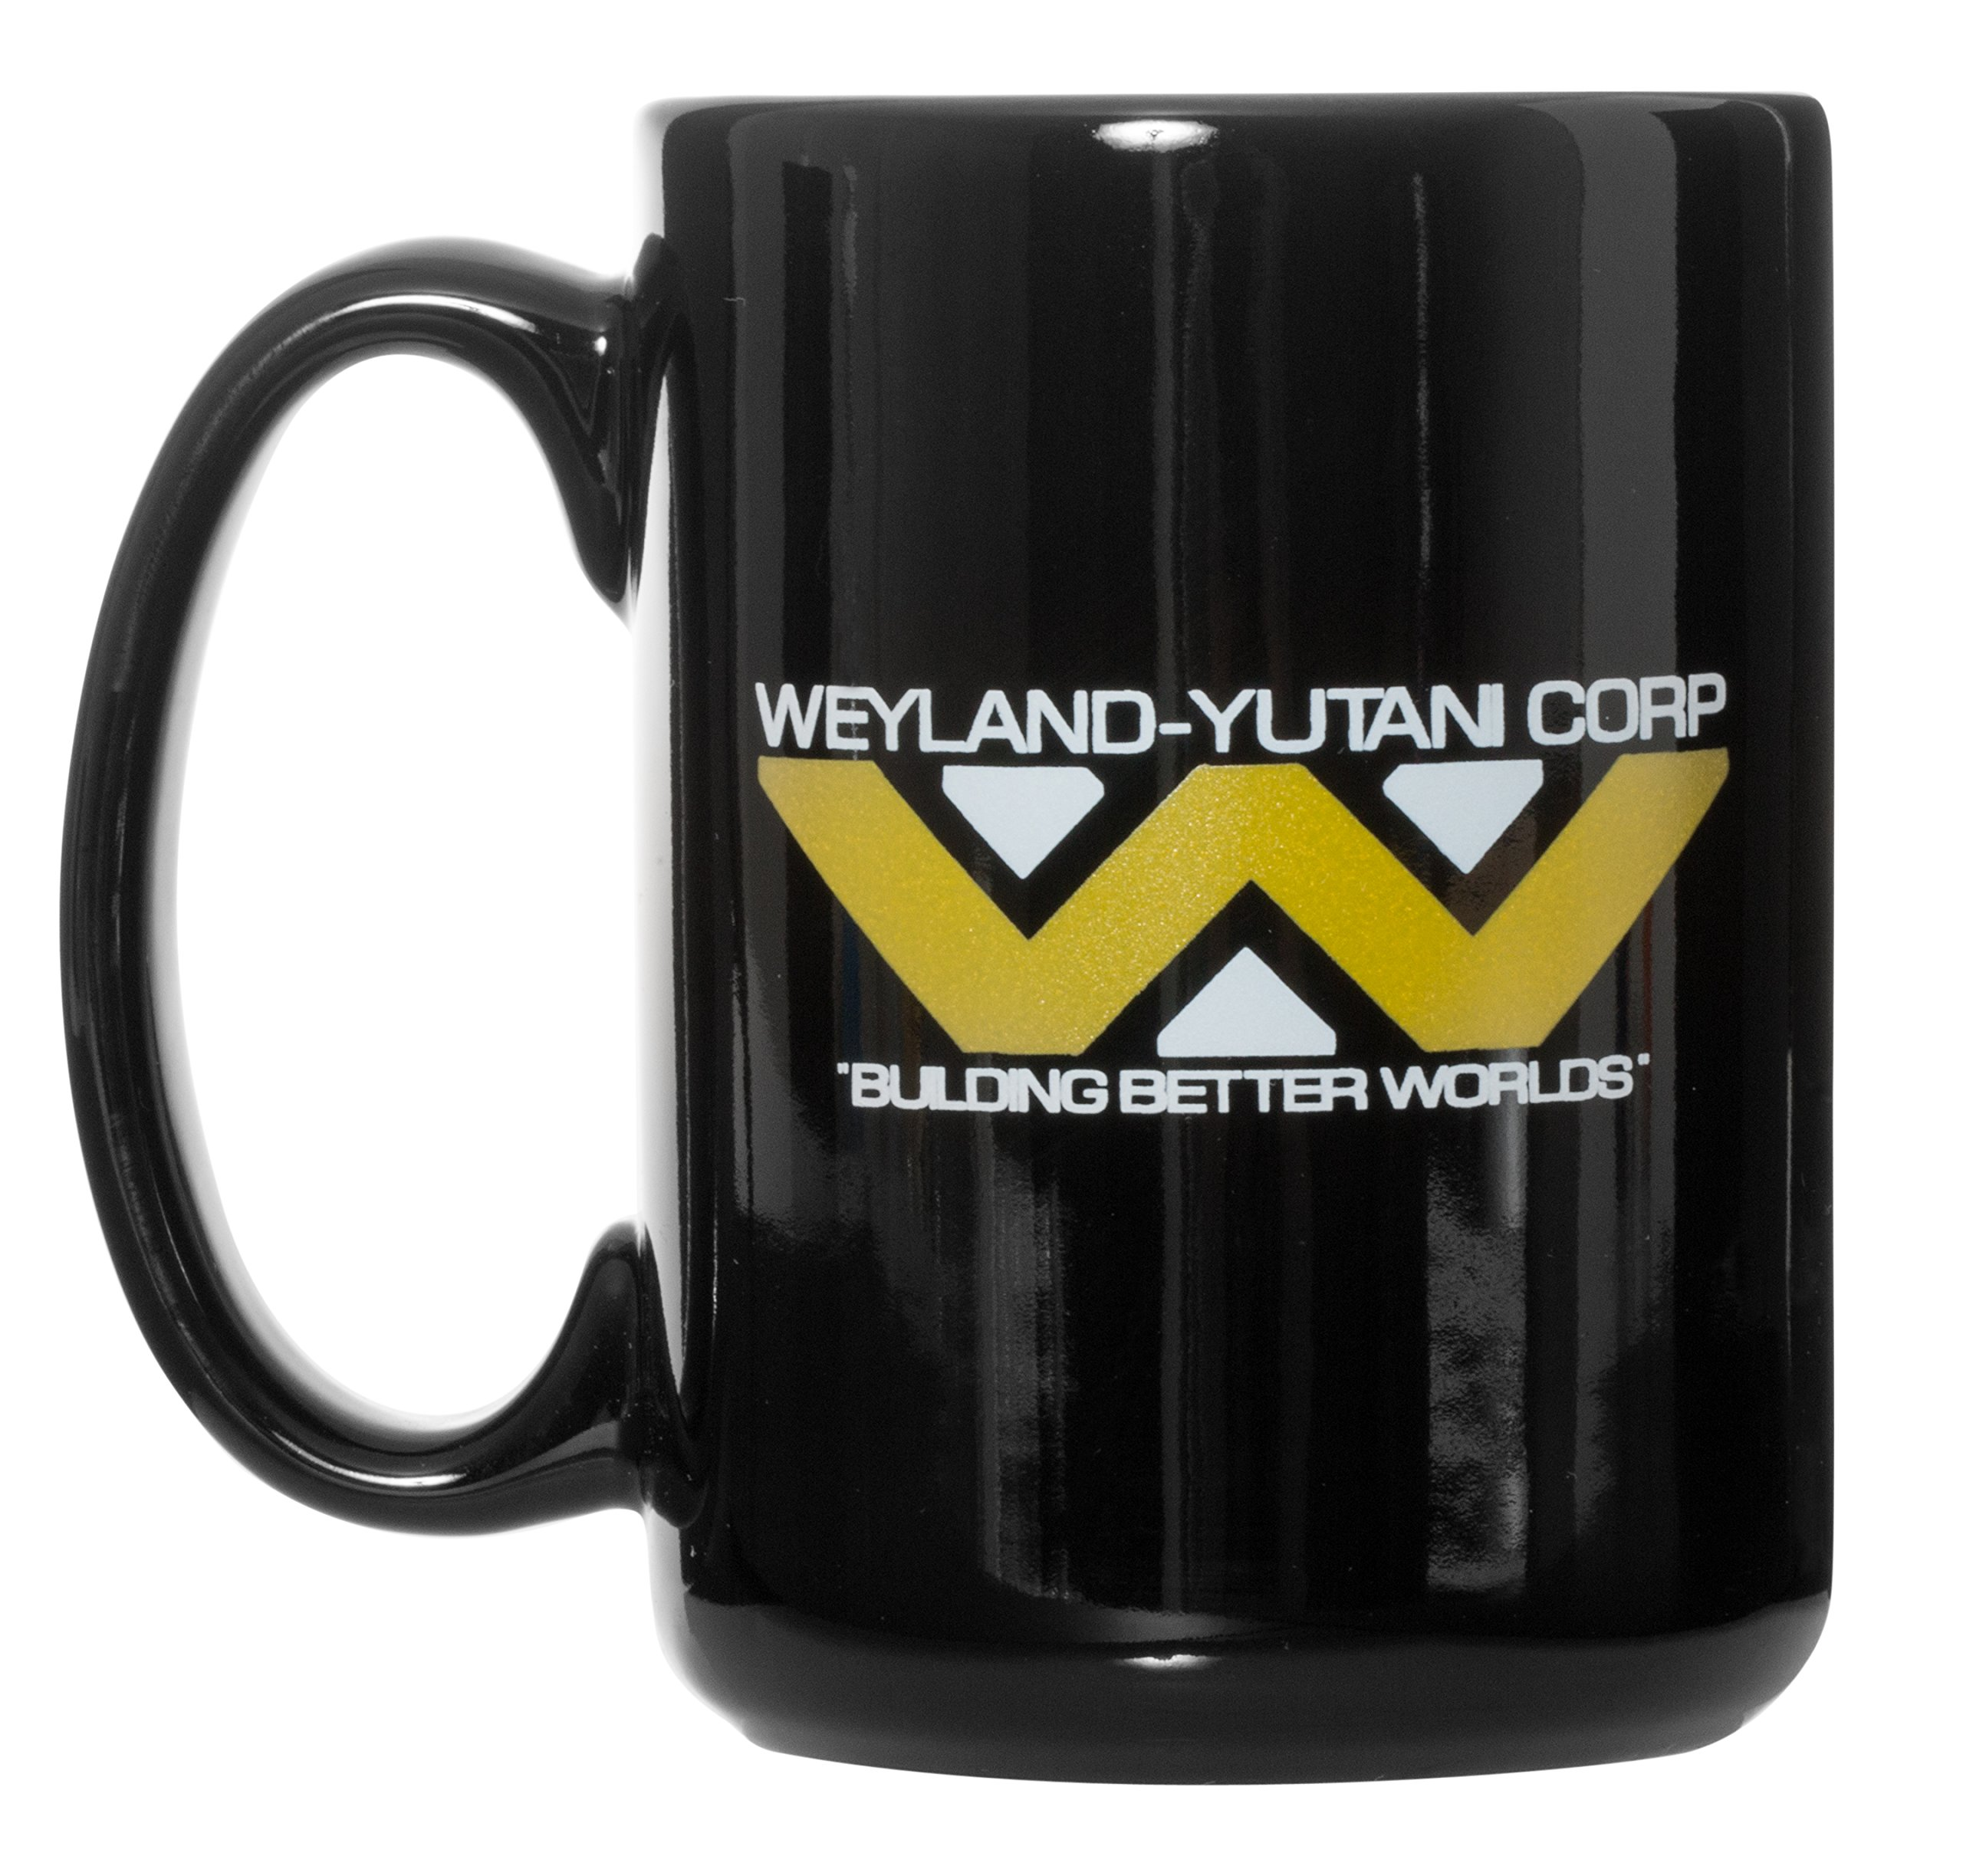 Weyland-Yutani Corp Mug''Building Better Worlds'' - 15oz Deluxe Double-Sided Bistro Coffee Tea Mug (Black) (Black)